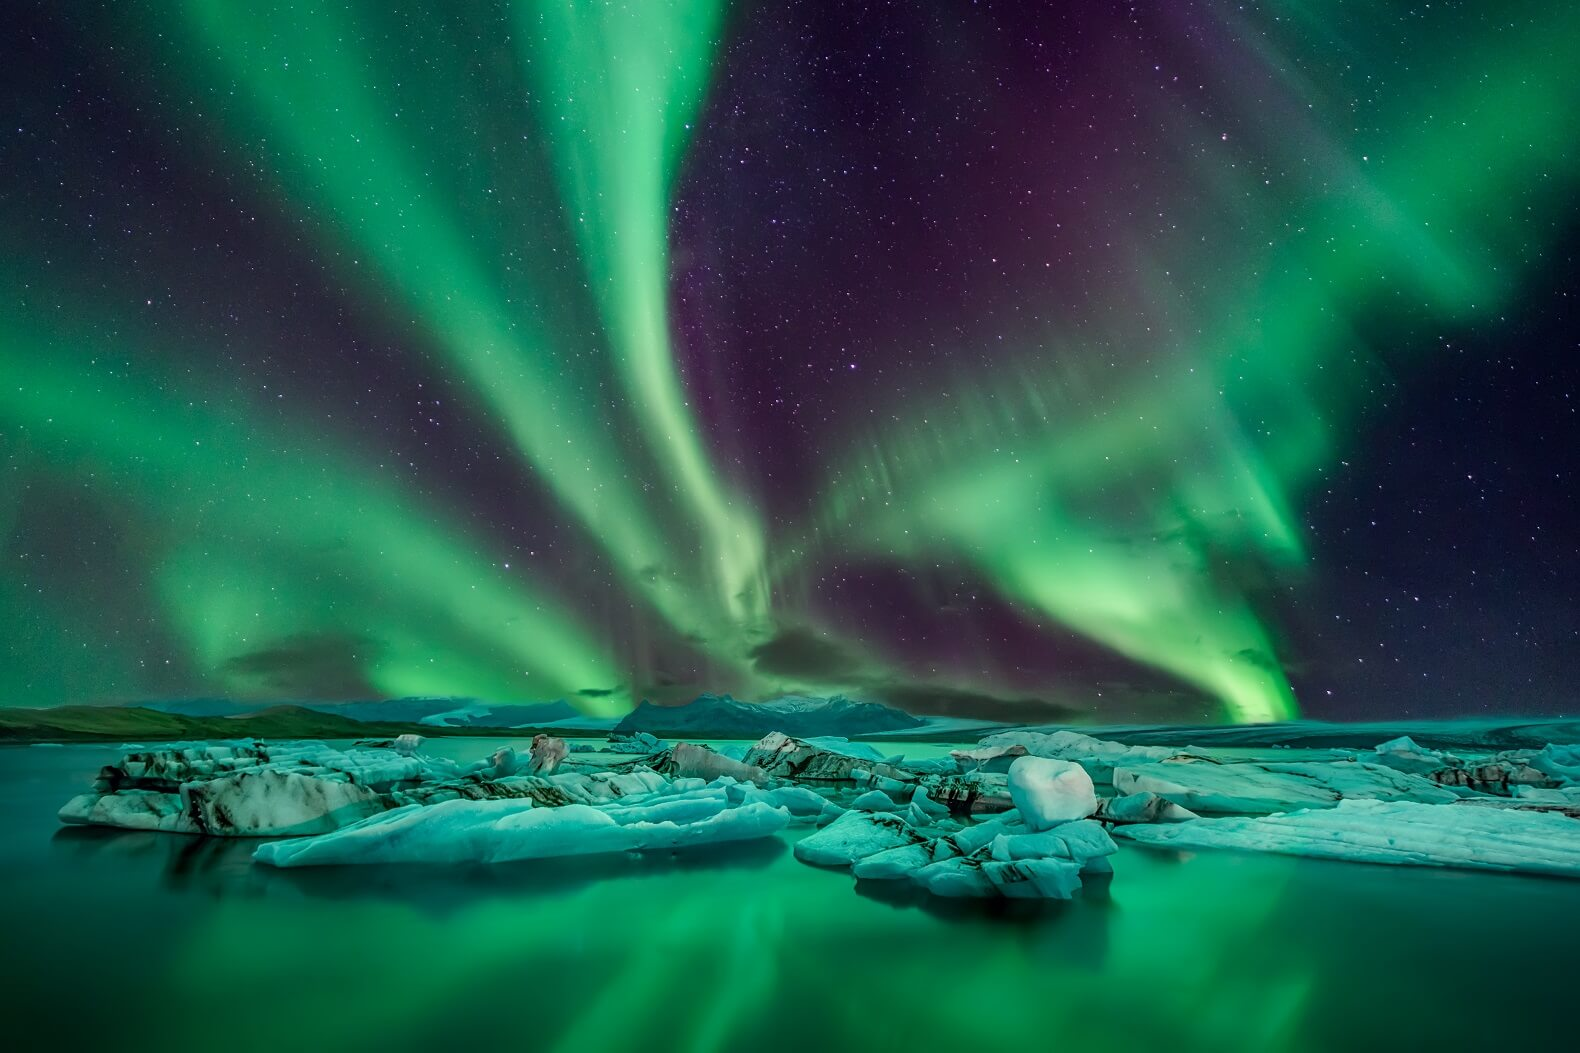 Northern lights in Iceland - One of the Best Things to do in Iceland